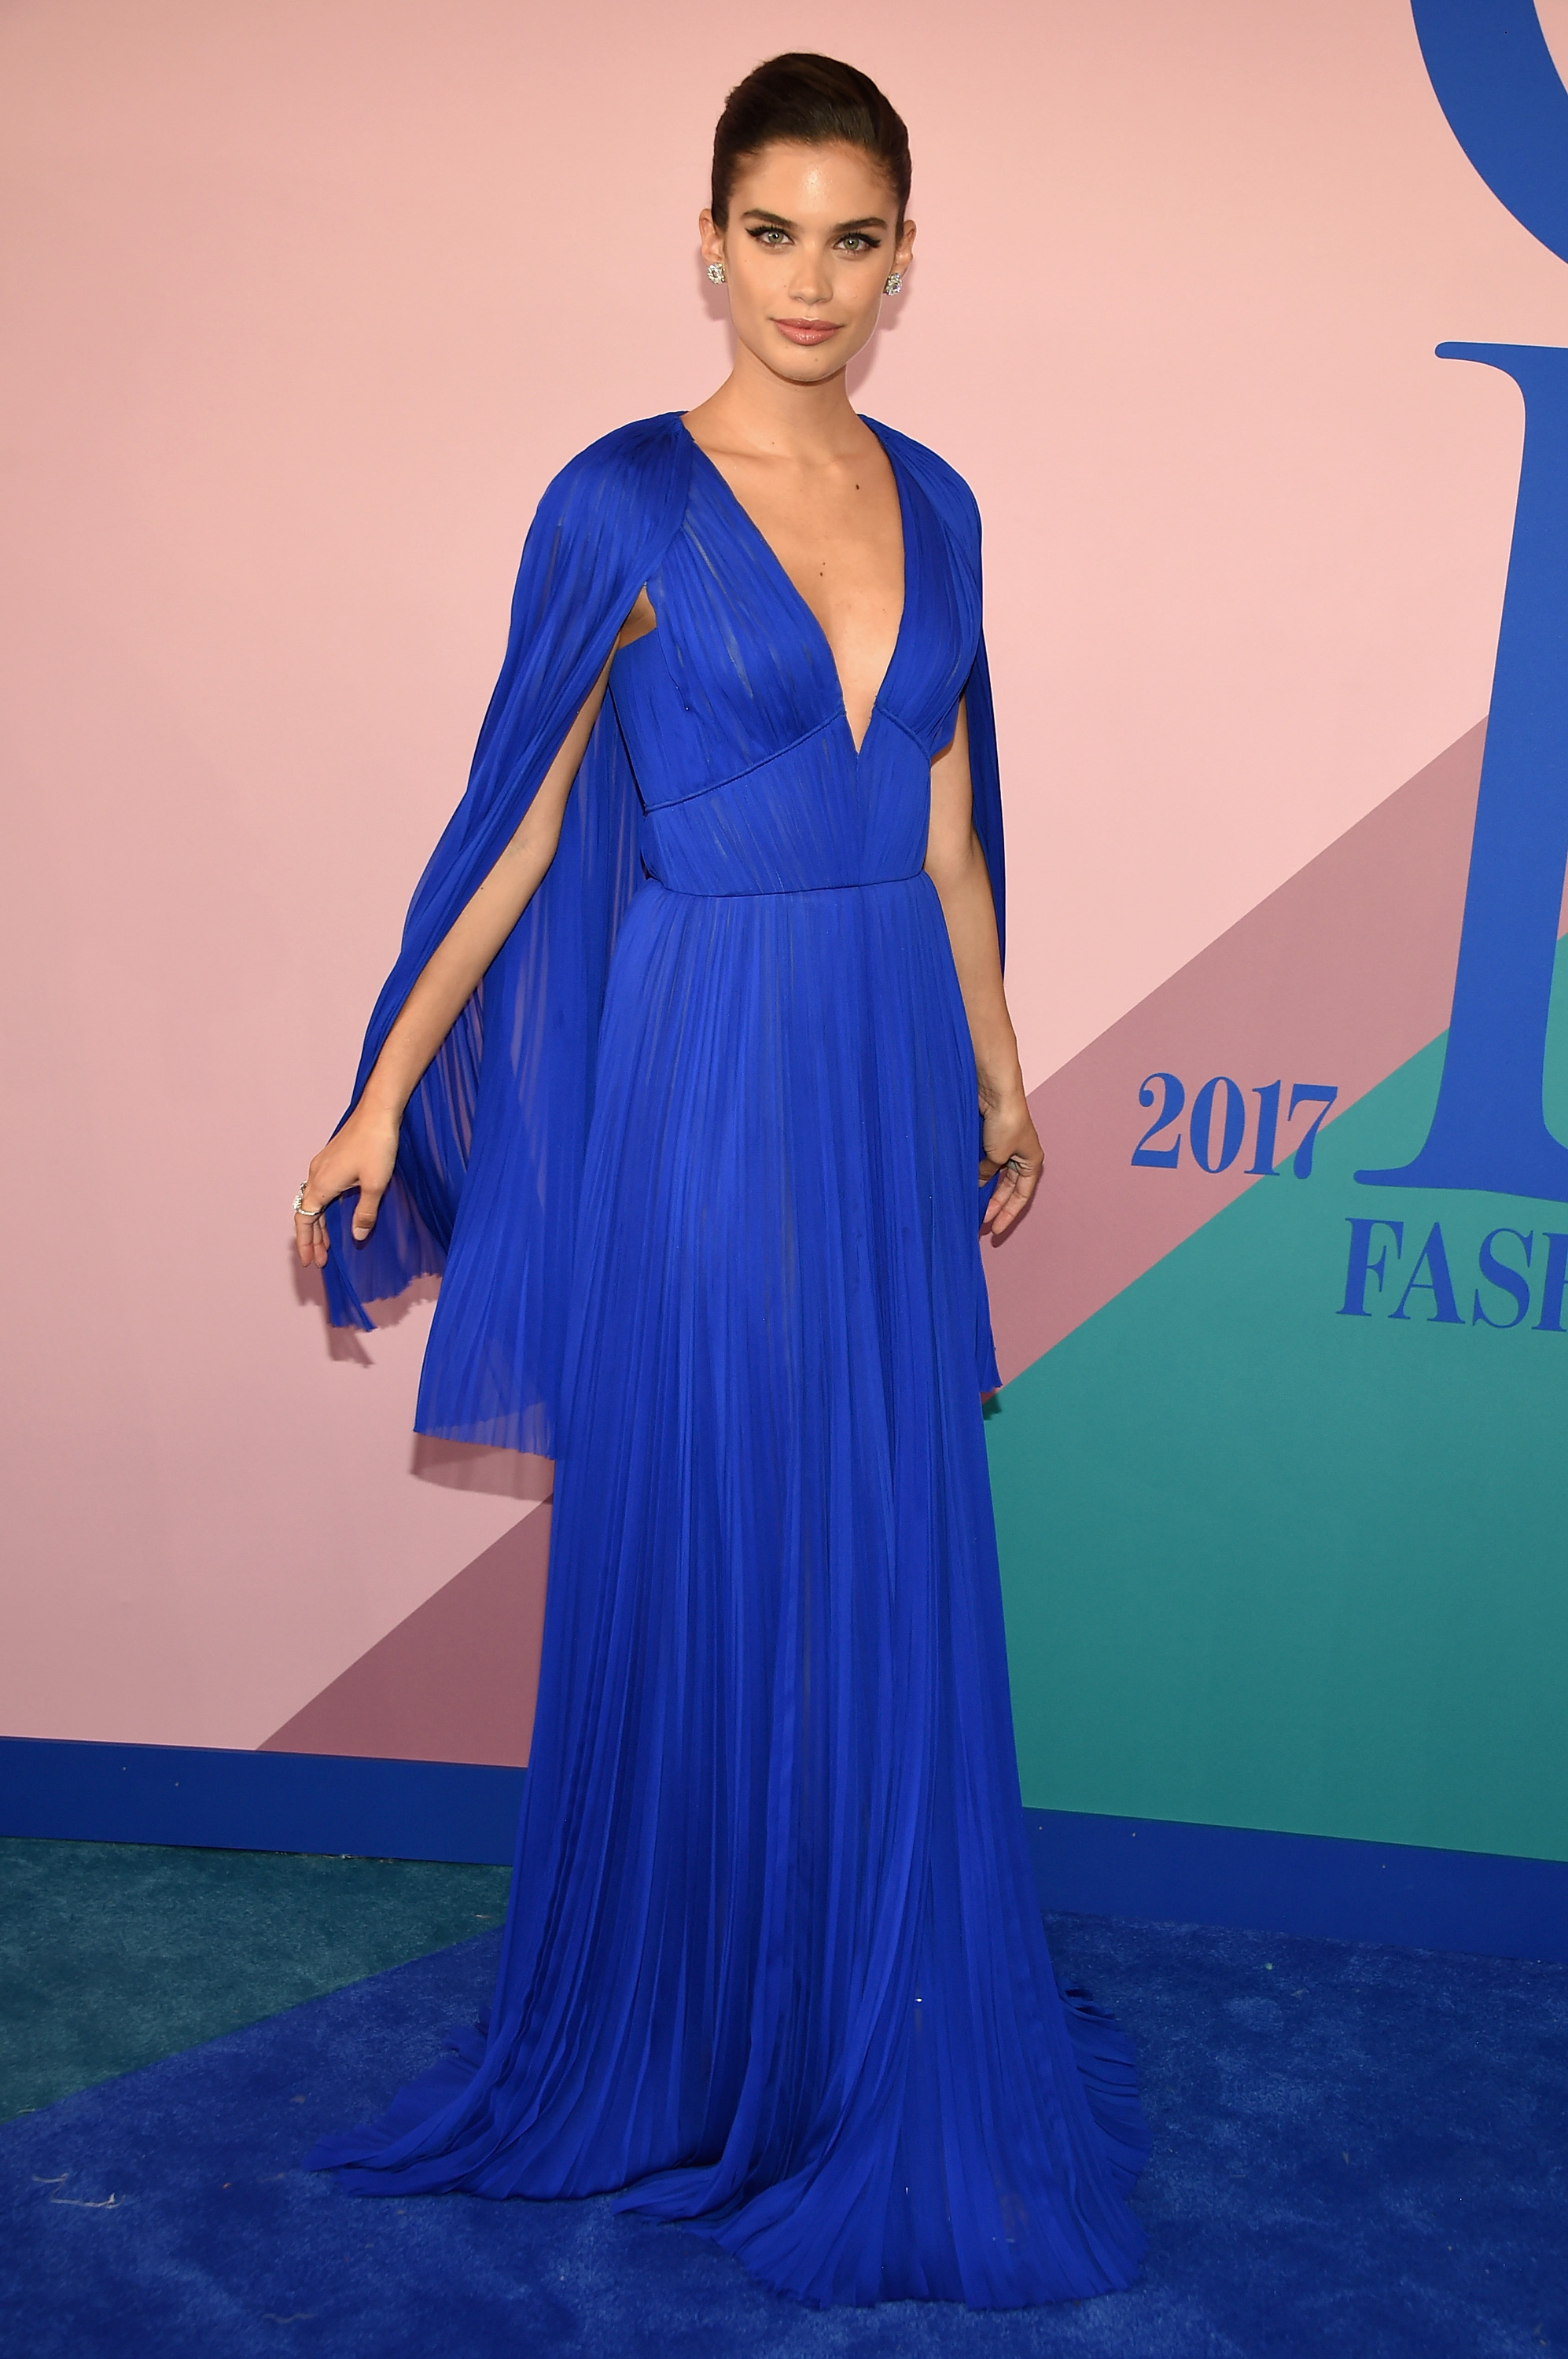 NEW YORK, NY - JUNE 05: Sara Sampaio attends the 2017 CFDA Fashion Awards at Hammerstein Ballroom on June 5, 2017 in New York City.  (Photo by Dimitrios Kambouris/Getty Images)